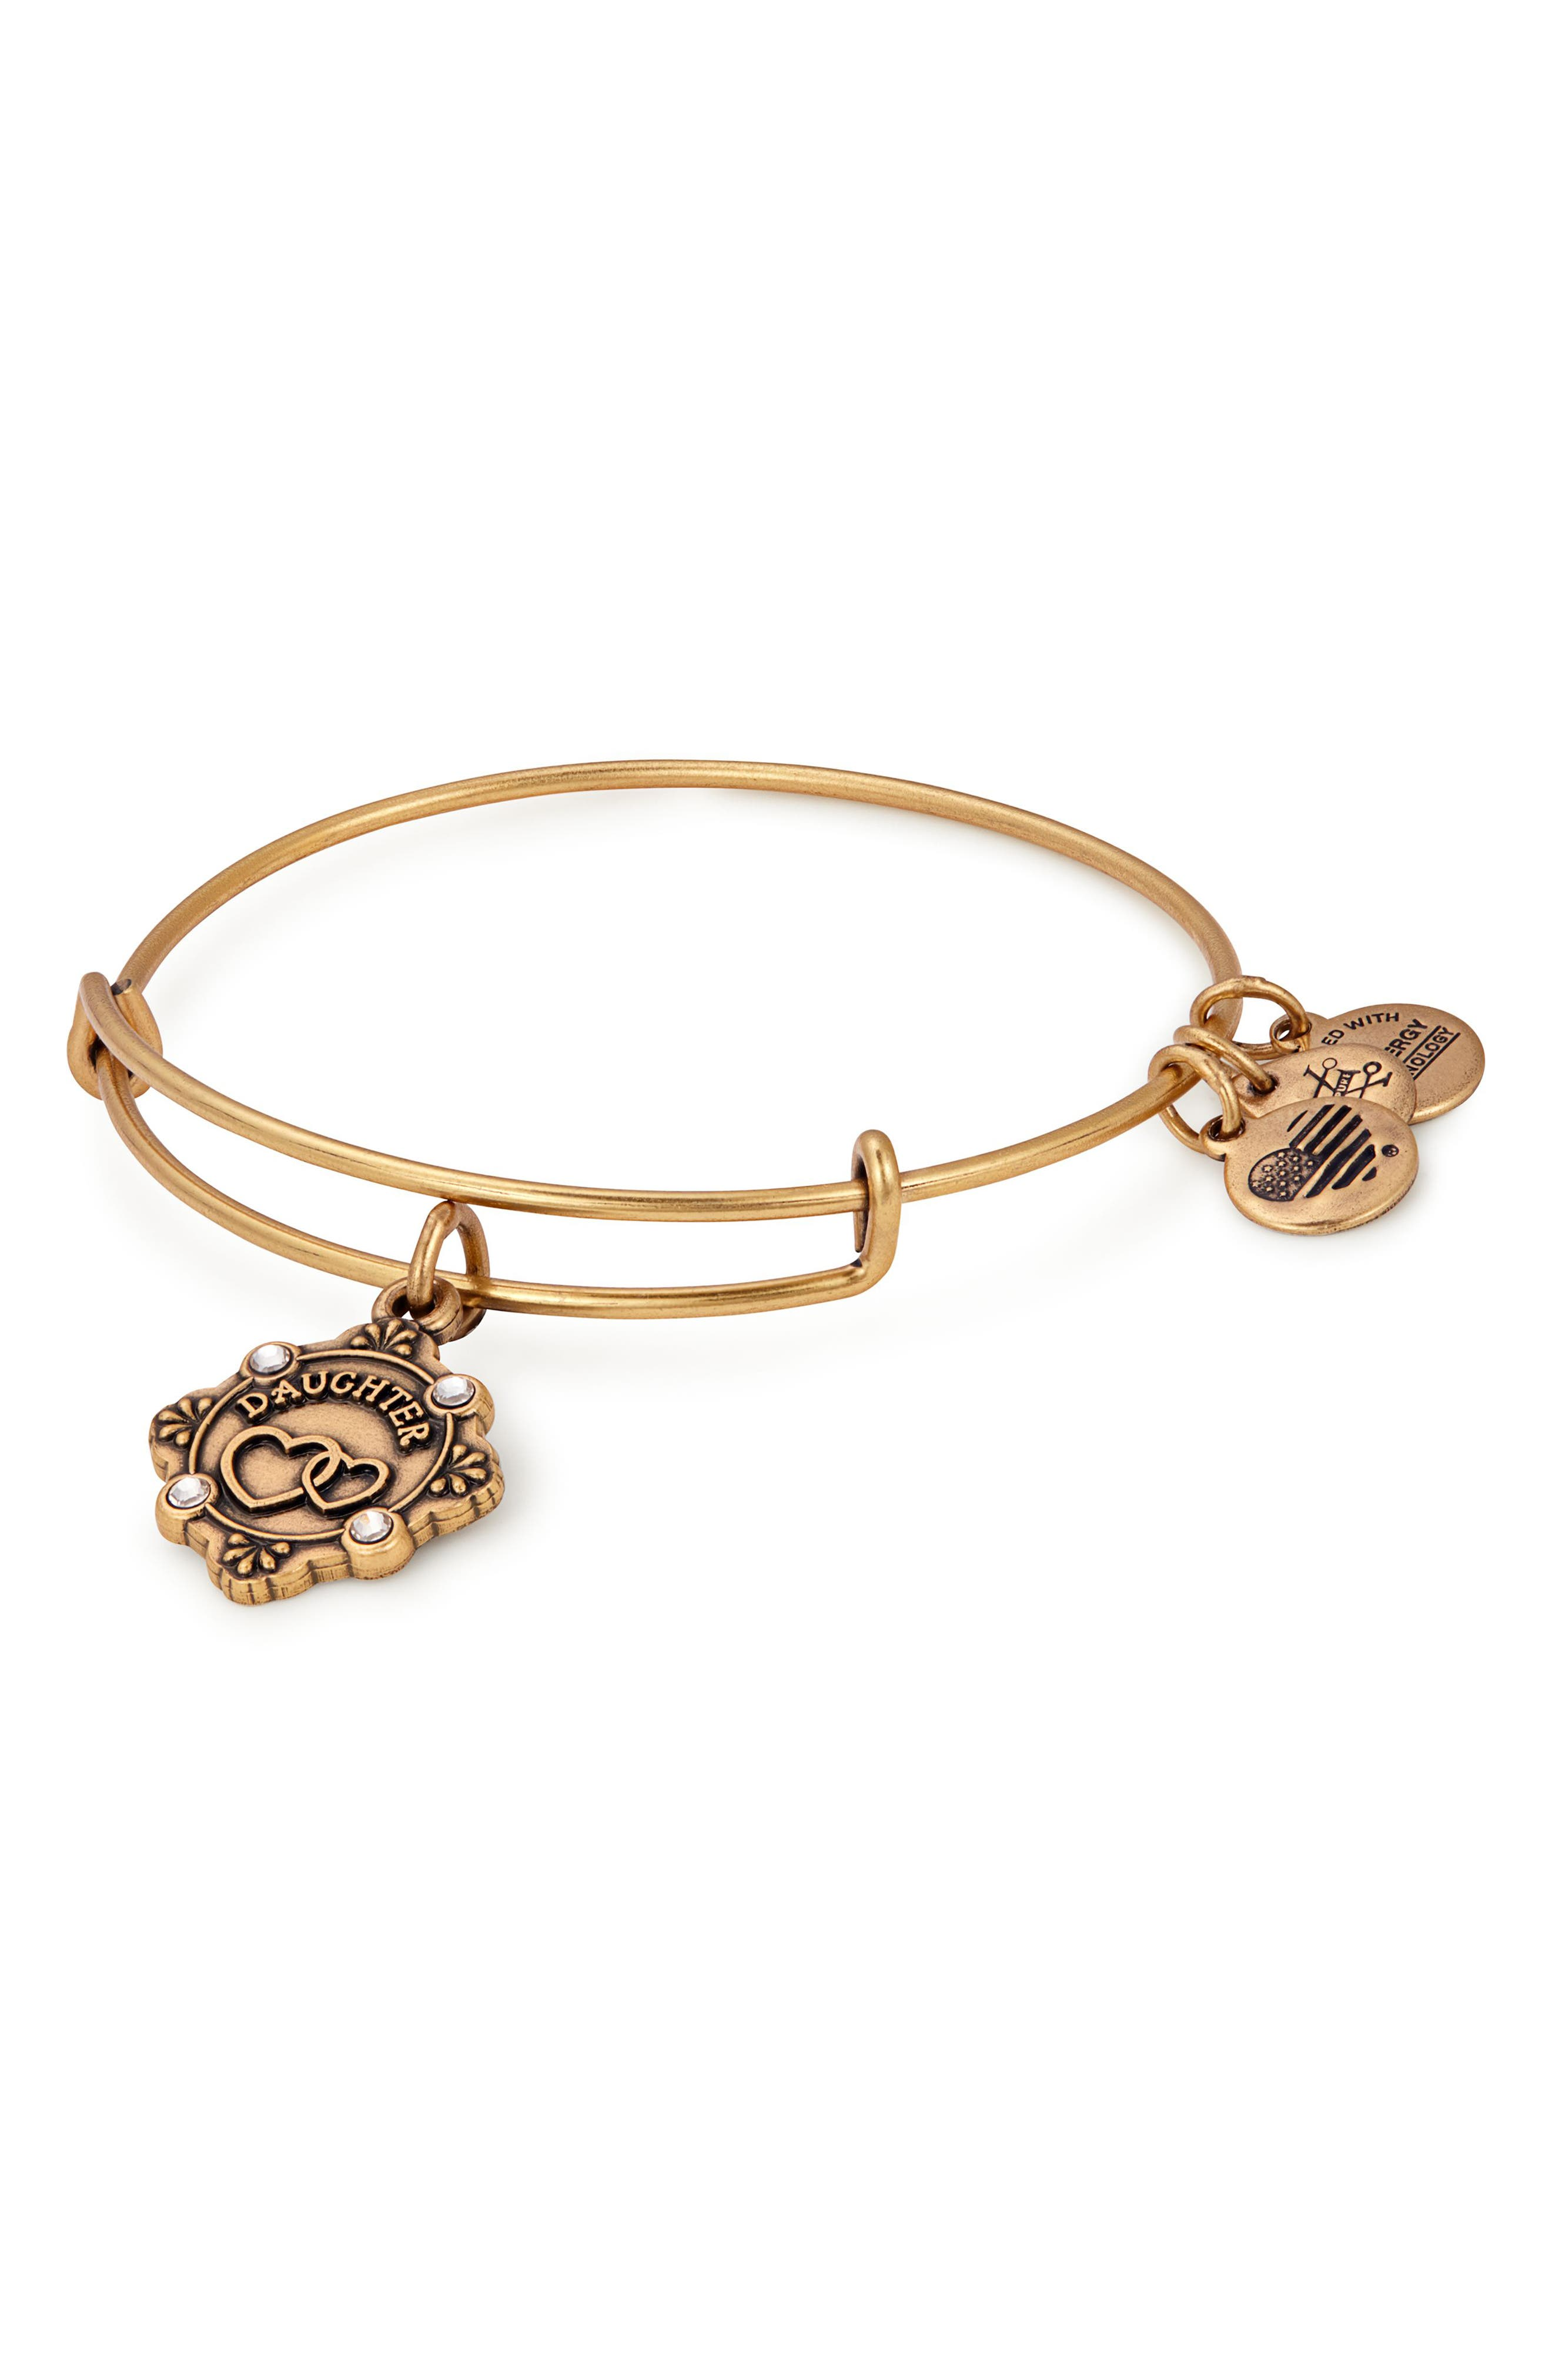 2eebe3209b3d0 Buy alex and ani accessories for women - Best women's alex and ani ...